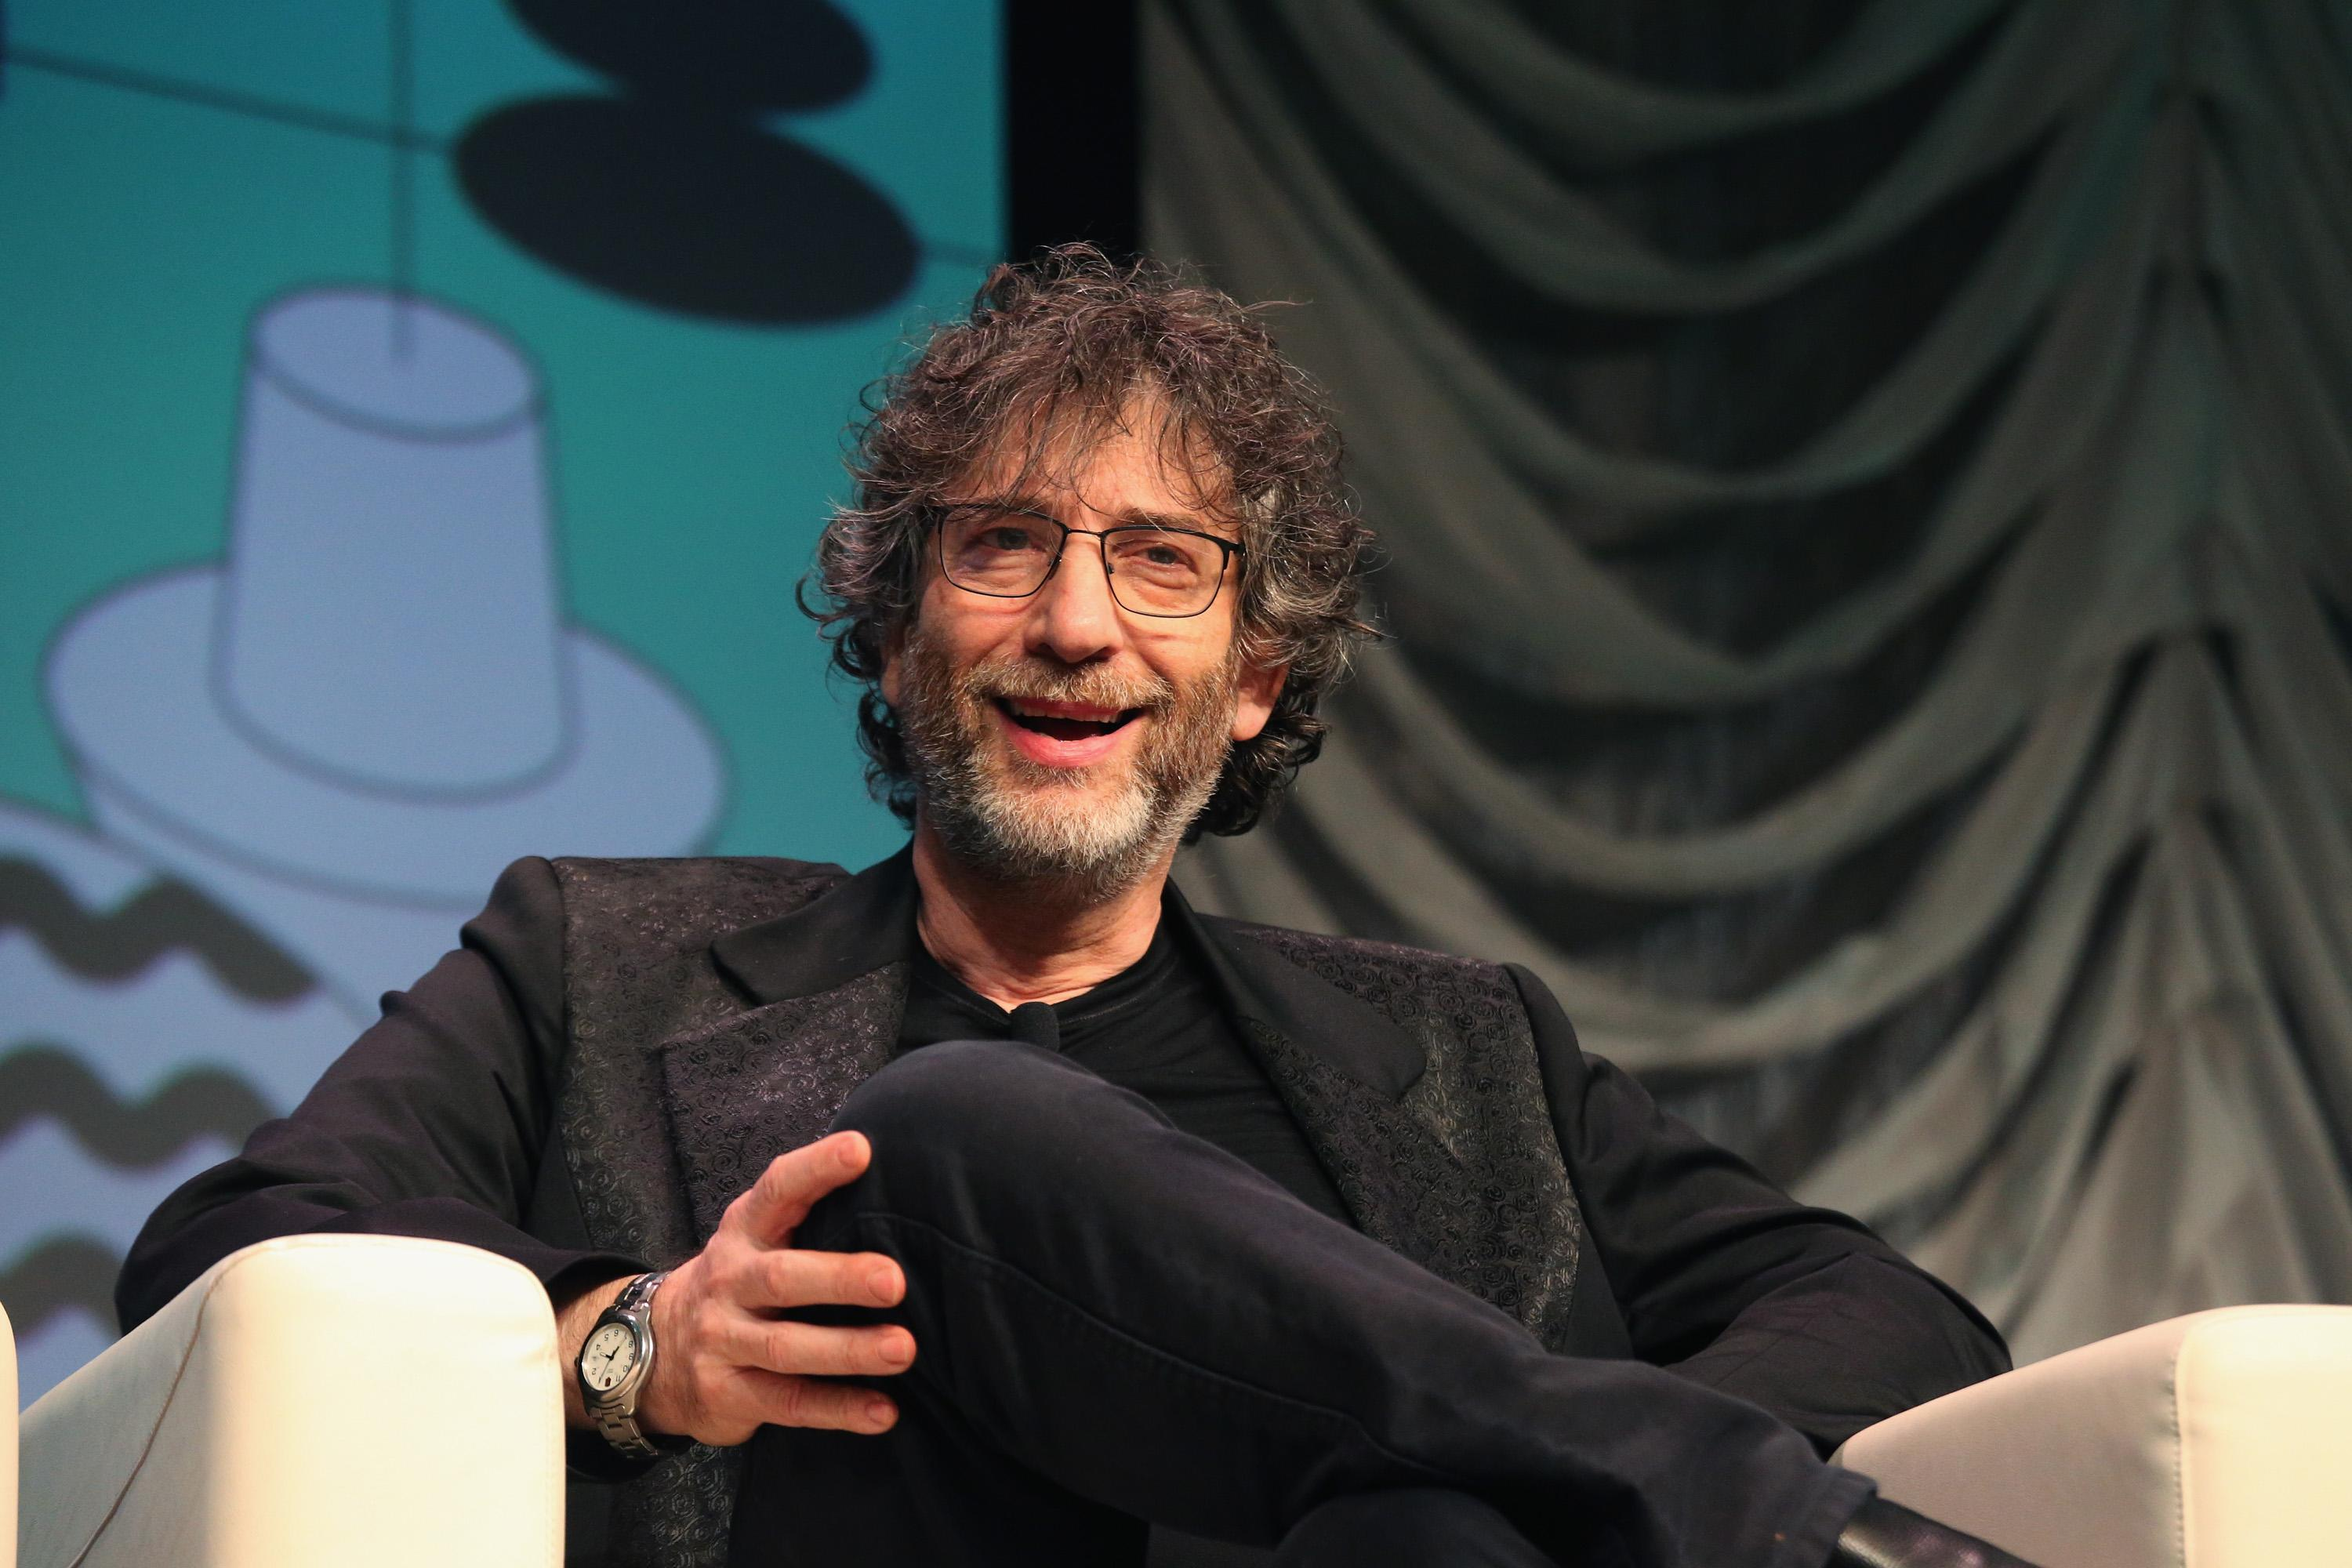 """AUSTIN, TEXAS - MARCH 09: Neil Gaiman speaks onstage at """"Featured Session: Neil Gaiman"""" at the Austin Convention Center during the SXSW Conference And Festival on March 9, 2019 in Austin, Texas. (Photo by Gary Miller/FilmMagic)"""